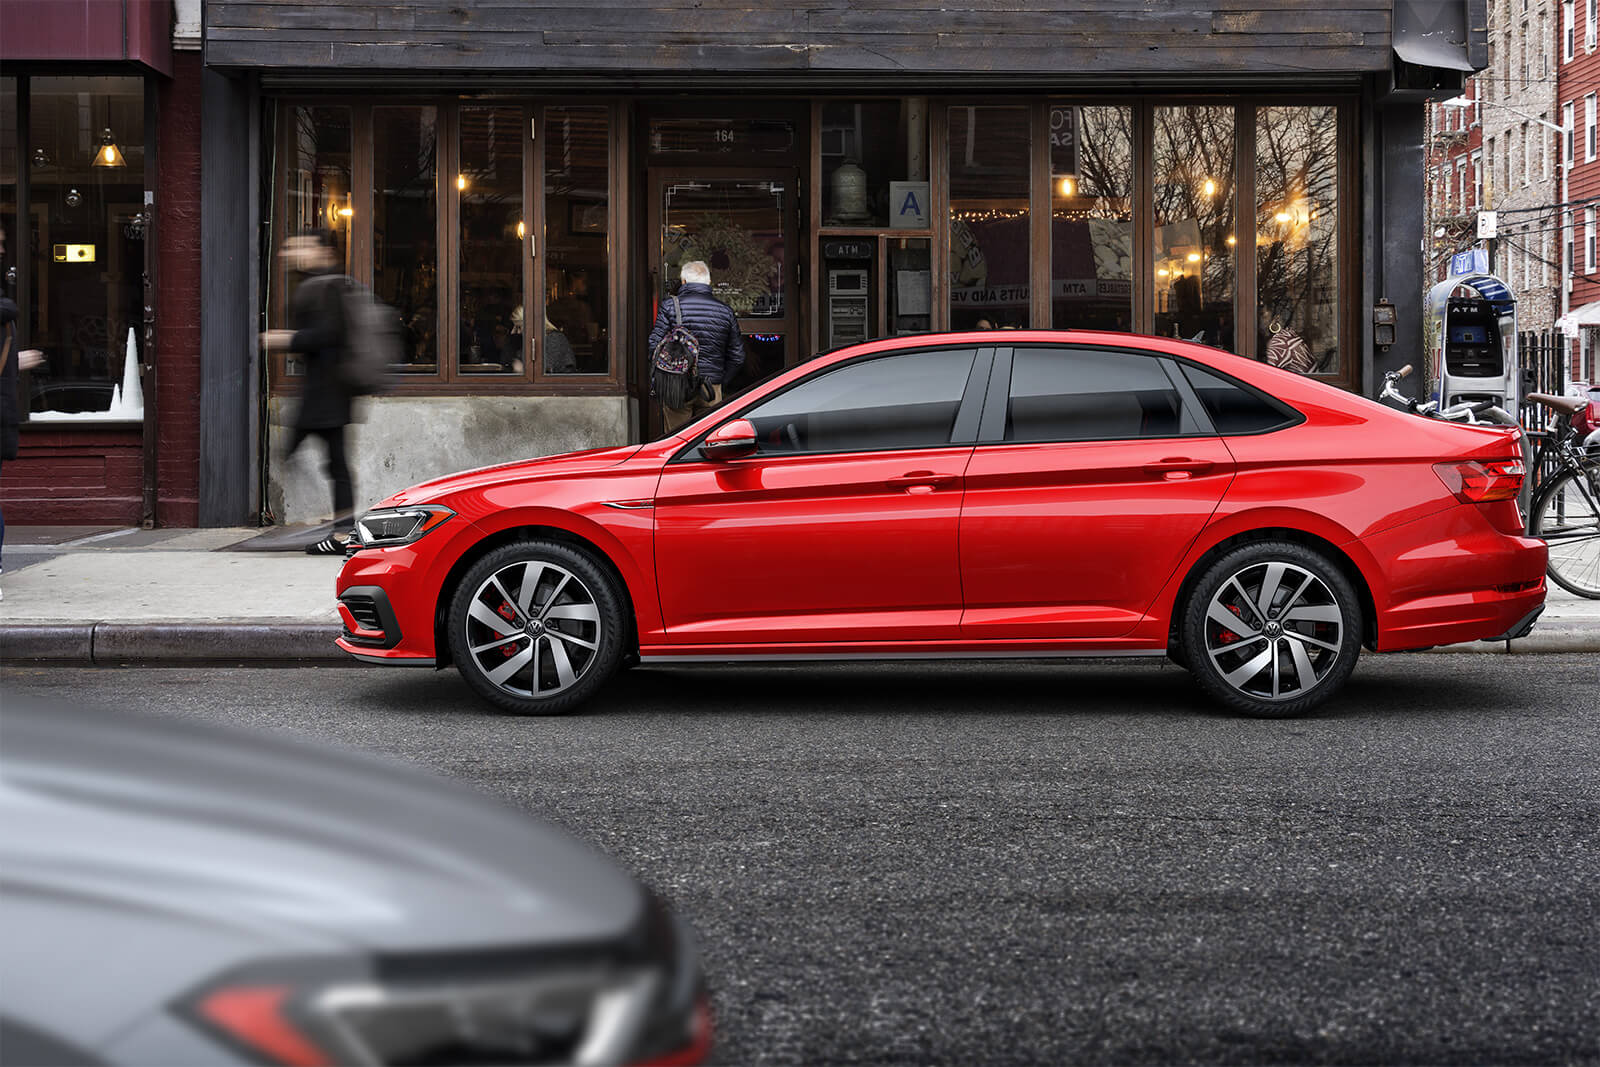 2019 Volkswagen Jetta GLI Red Exterior Side Profile Picture